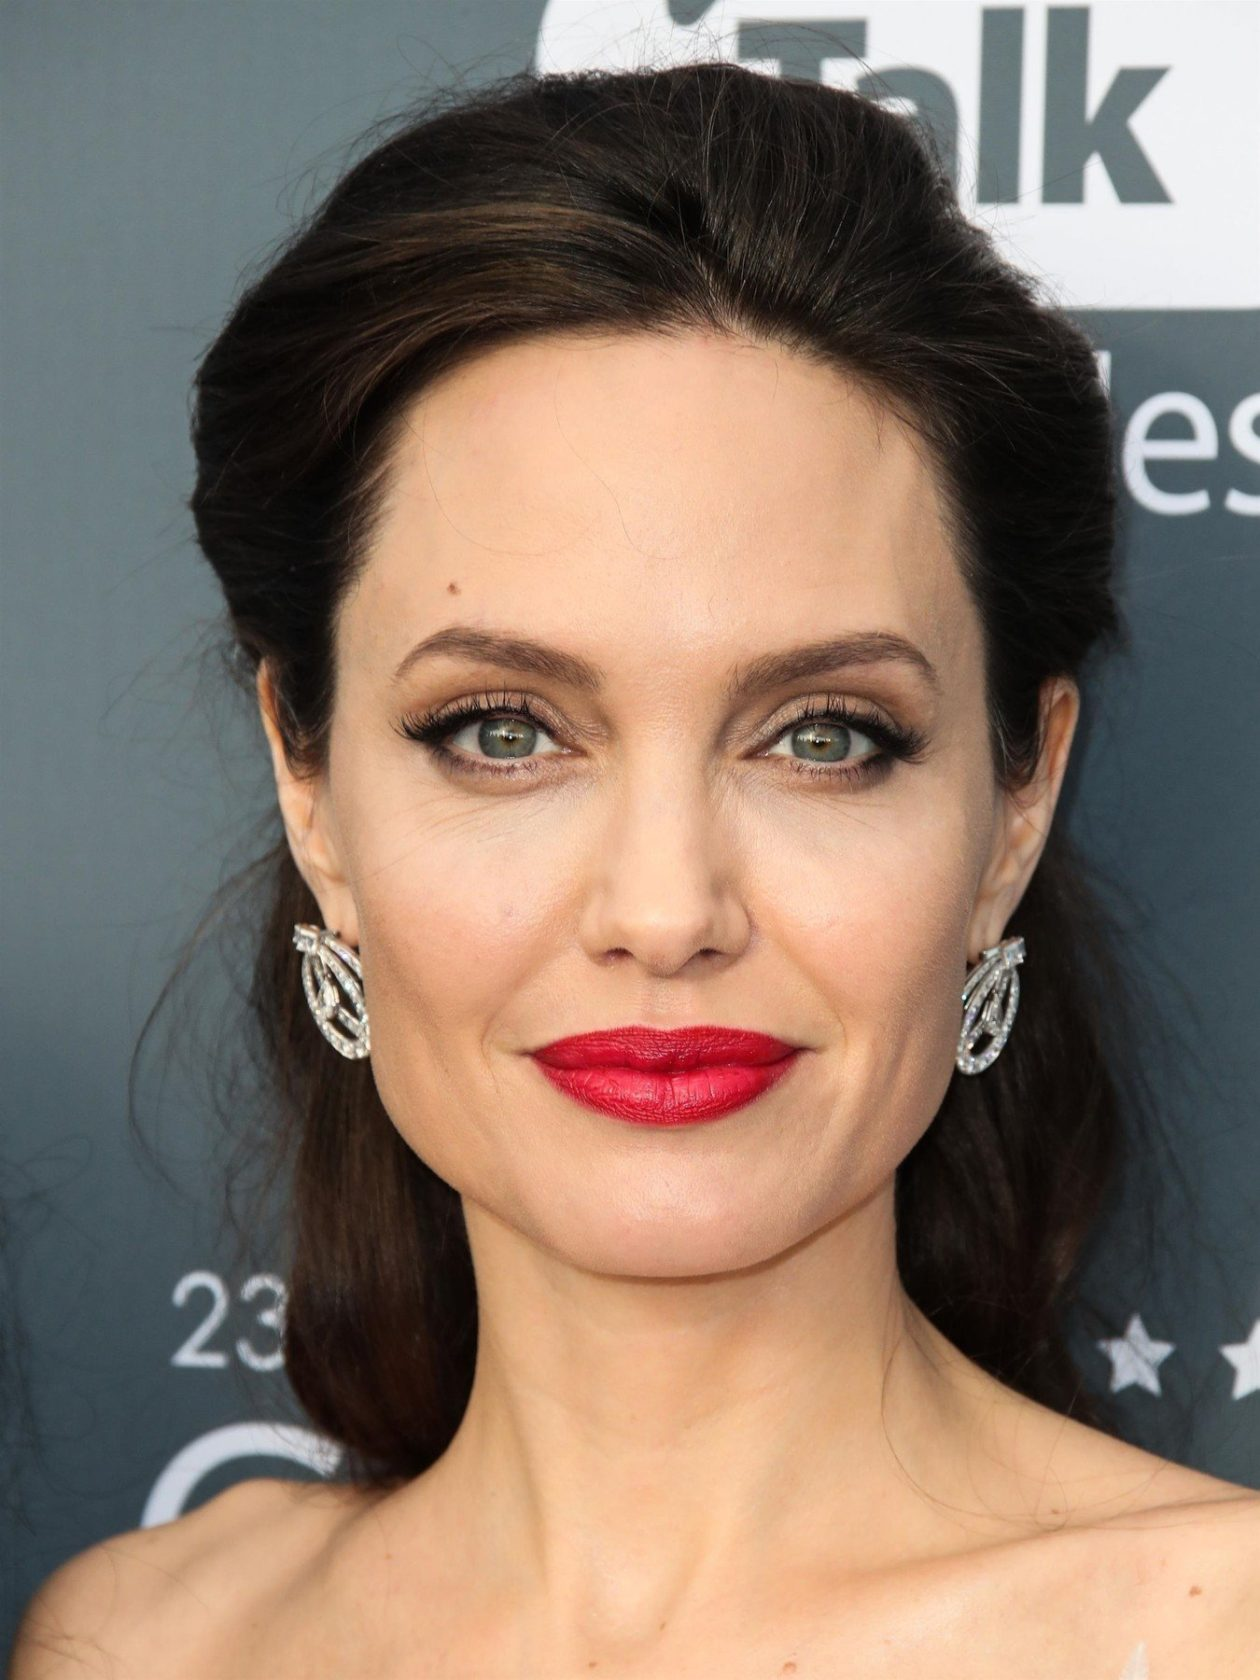 Santa Monica, CA - Actress Angelina Jolie glows as she is seen wearing a Ralph & Russo dress, Stuart Weitzman shoes, and Neil Lane jewelry arrives at the 23rd Annual Critics' Choice Awards held at Barker Hangar. Pictured: Angelina Jolie BACKGRID USA 11 JANUARY 2018, Image: 359953749, License: Rights-managed, Restrictions: , Model Release: no, Credit line: Profimedia, AKM-GSI